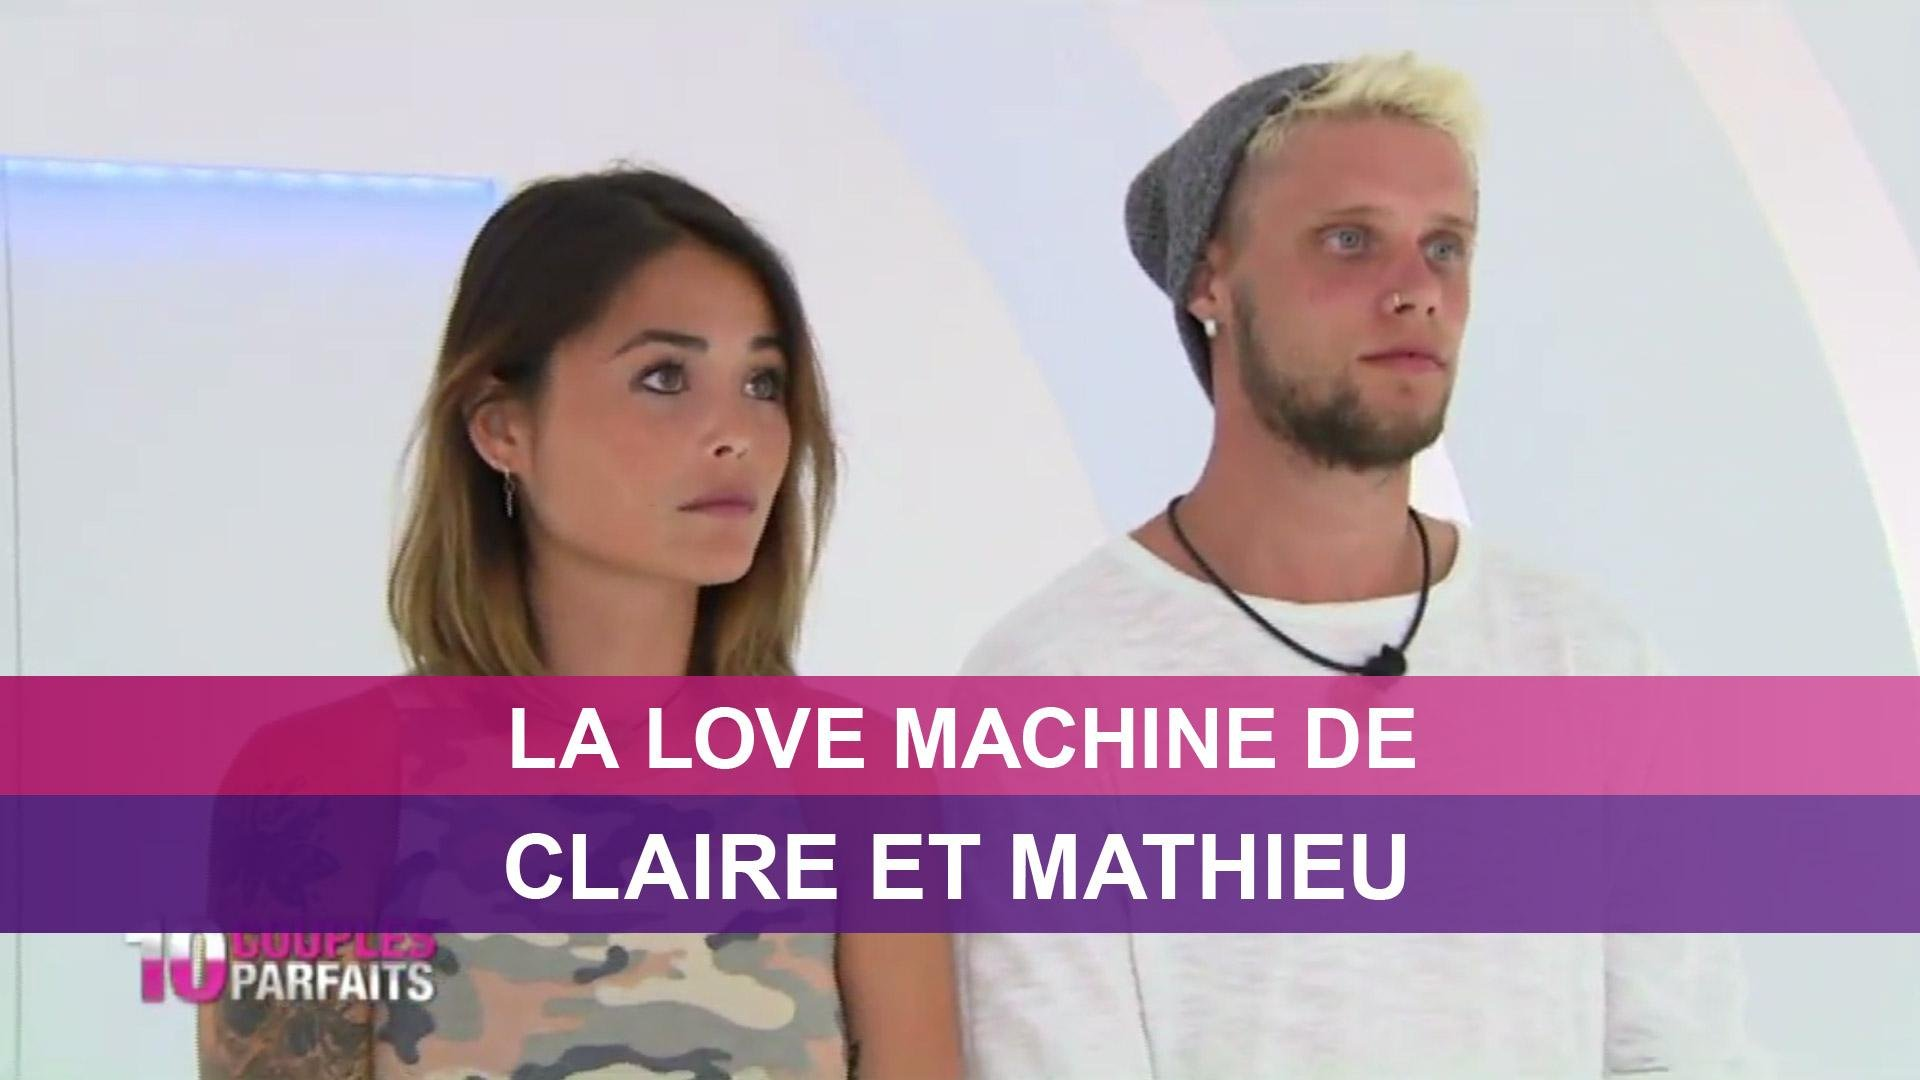 10-couples-parfaits-love-machine-de-claire-mathieu-2ef355-0@1x.jpeg (1920×1080)